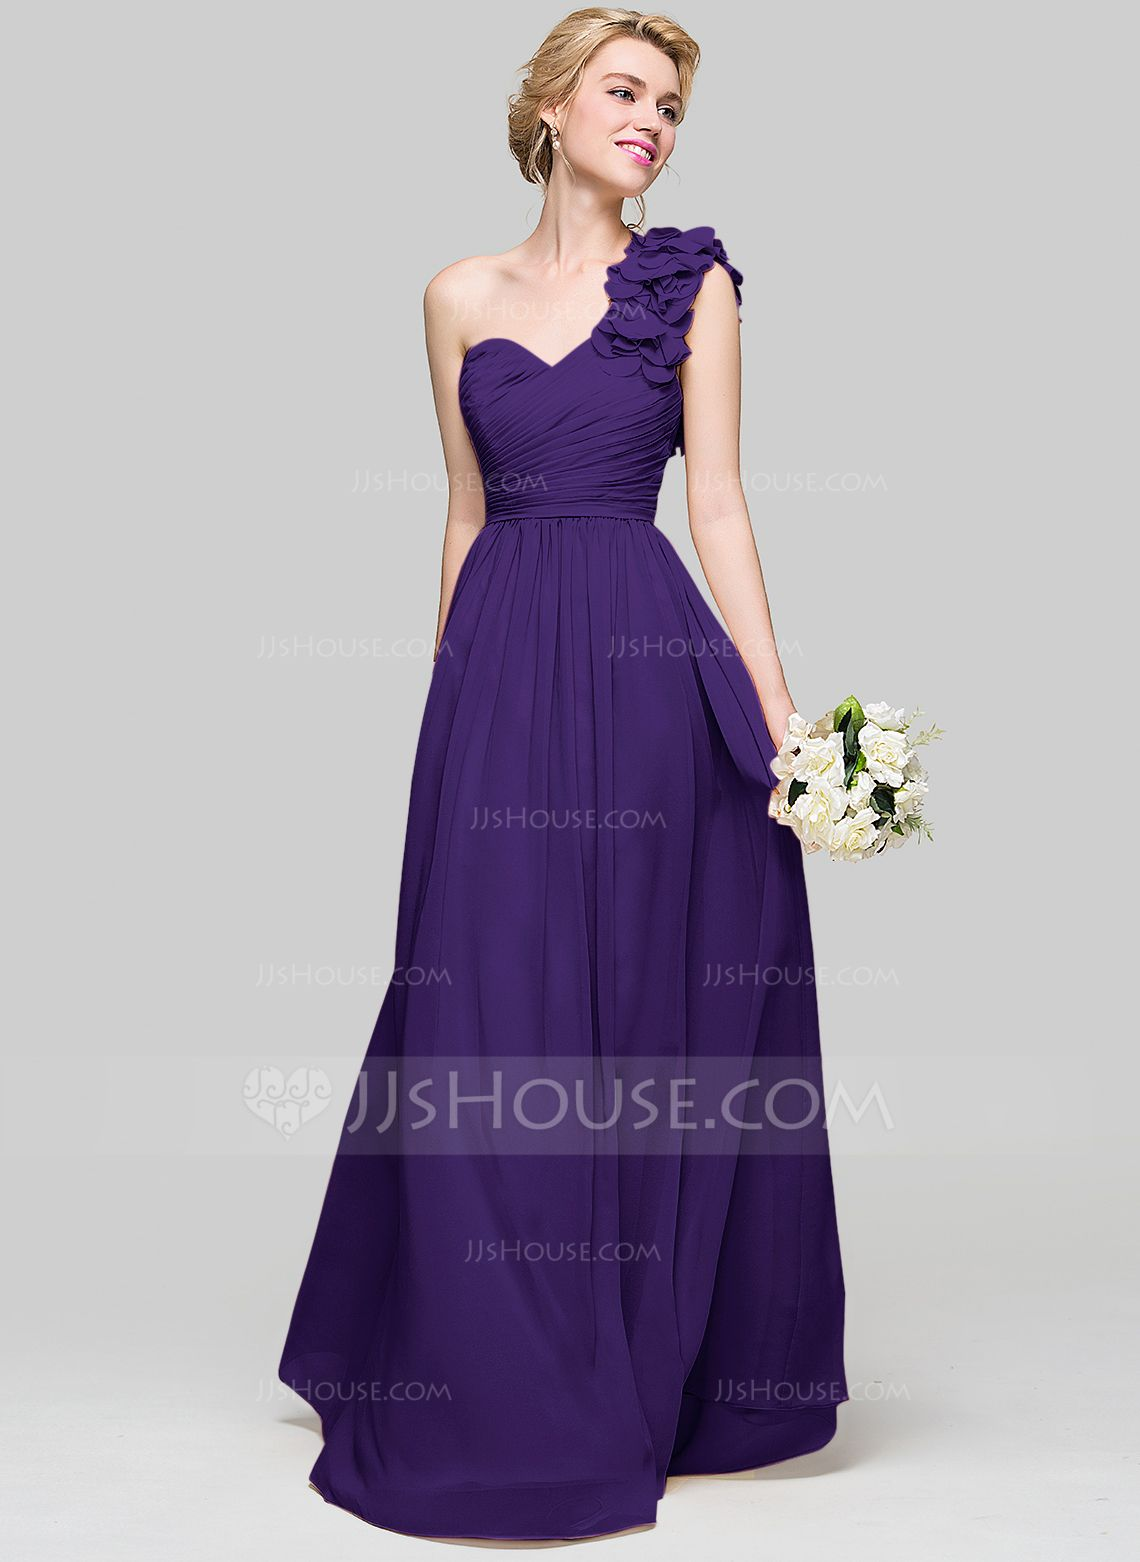 72f707f34fd7 A-Line/Princess One-Shoulder Floor-Length Chiffon Bridesmaid Dress With Ruffle  Flower(s) (007094023) - Bridesmaid Dresses - JJsHouse